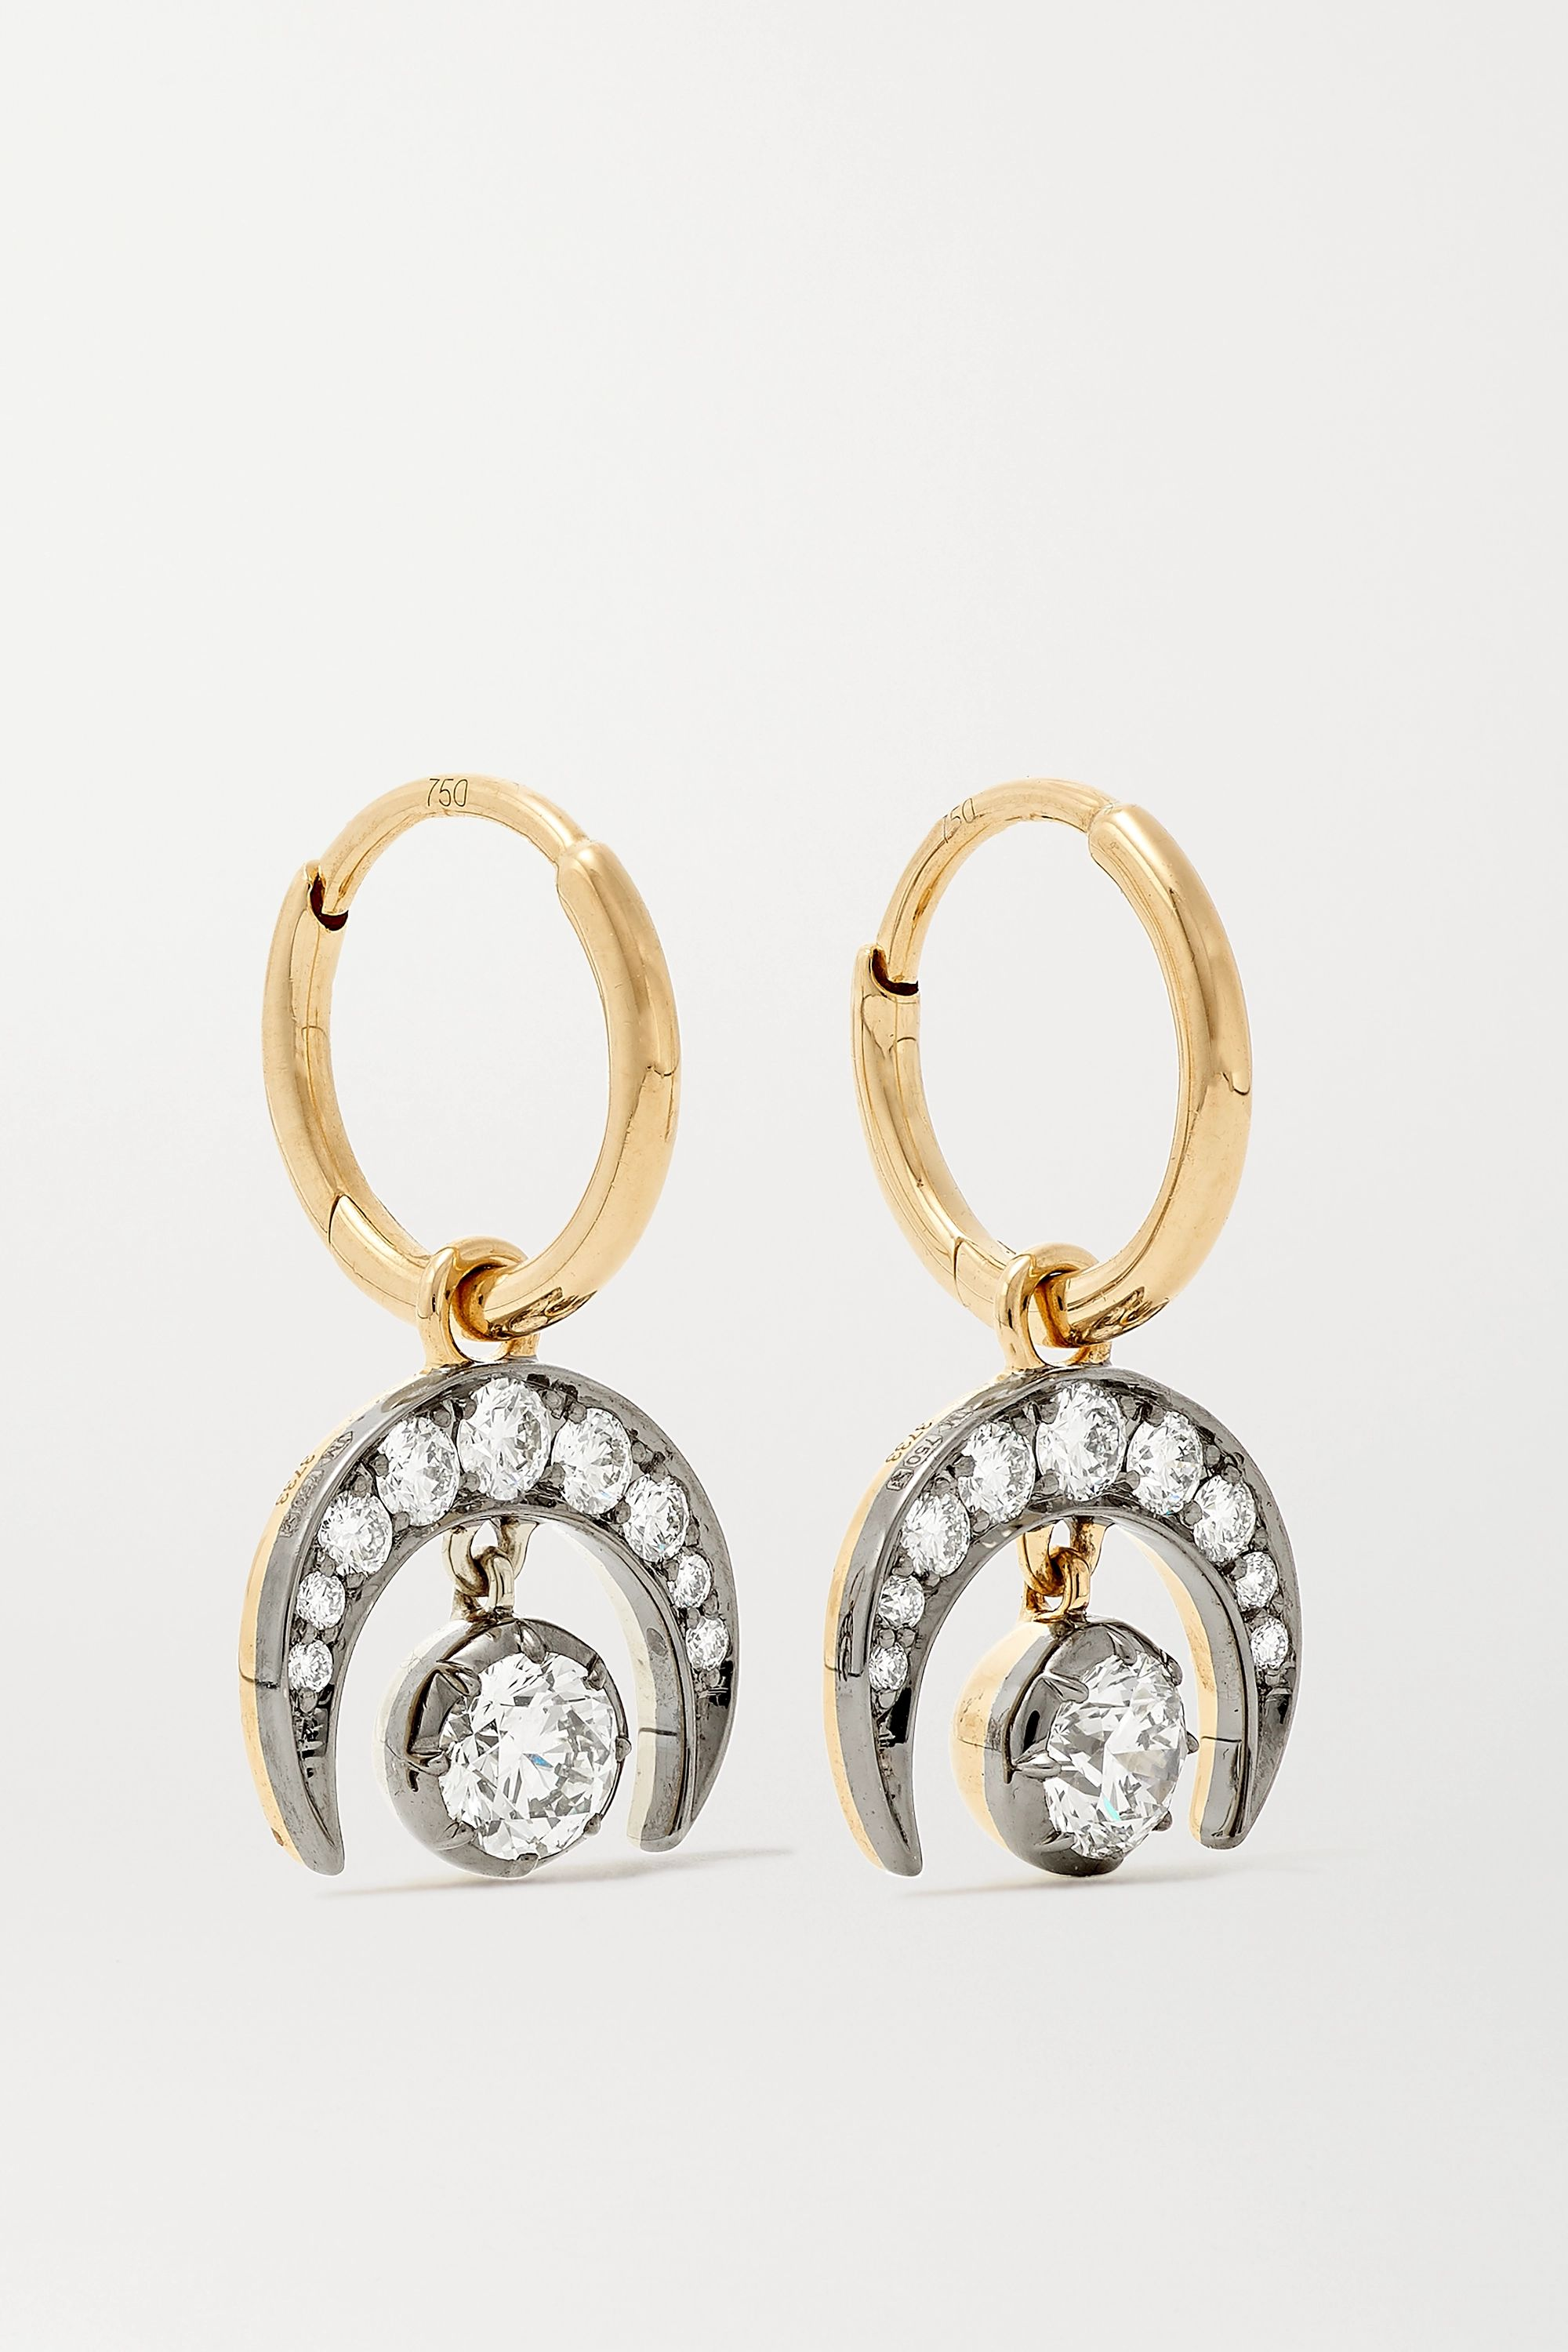 Jessica McCormack Gypset 18-karat yellow and blackened white gold diamond earrings